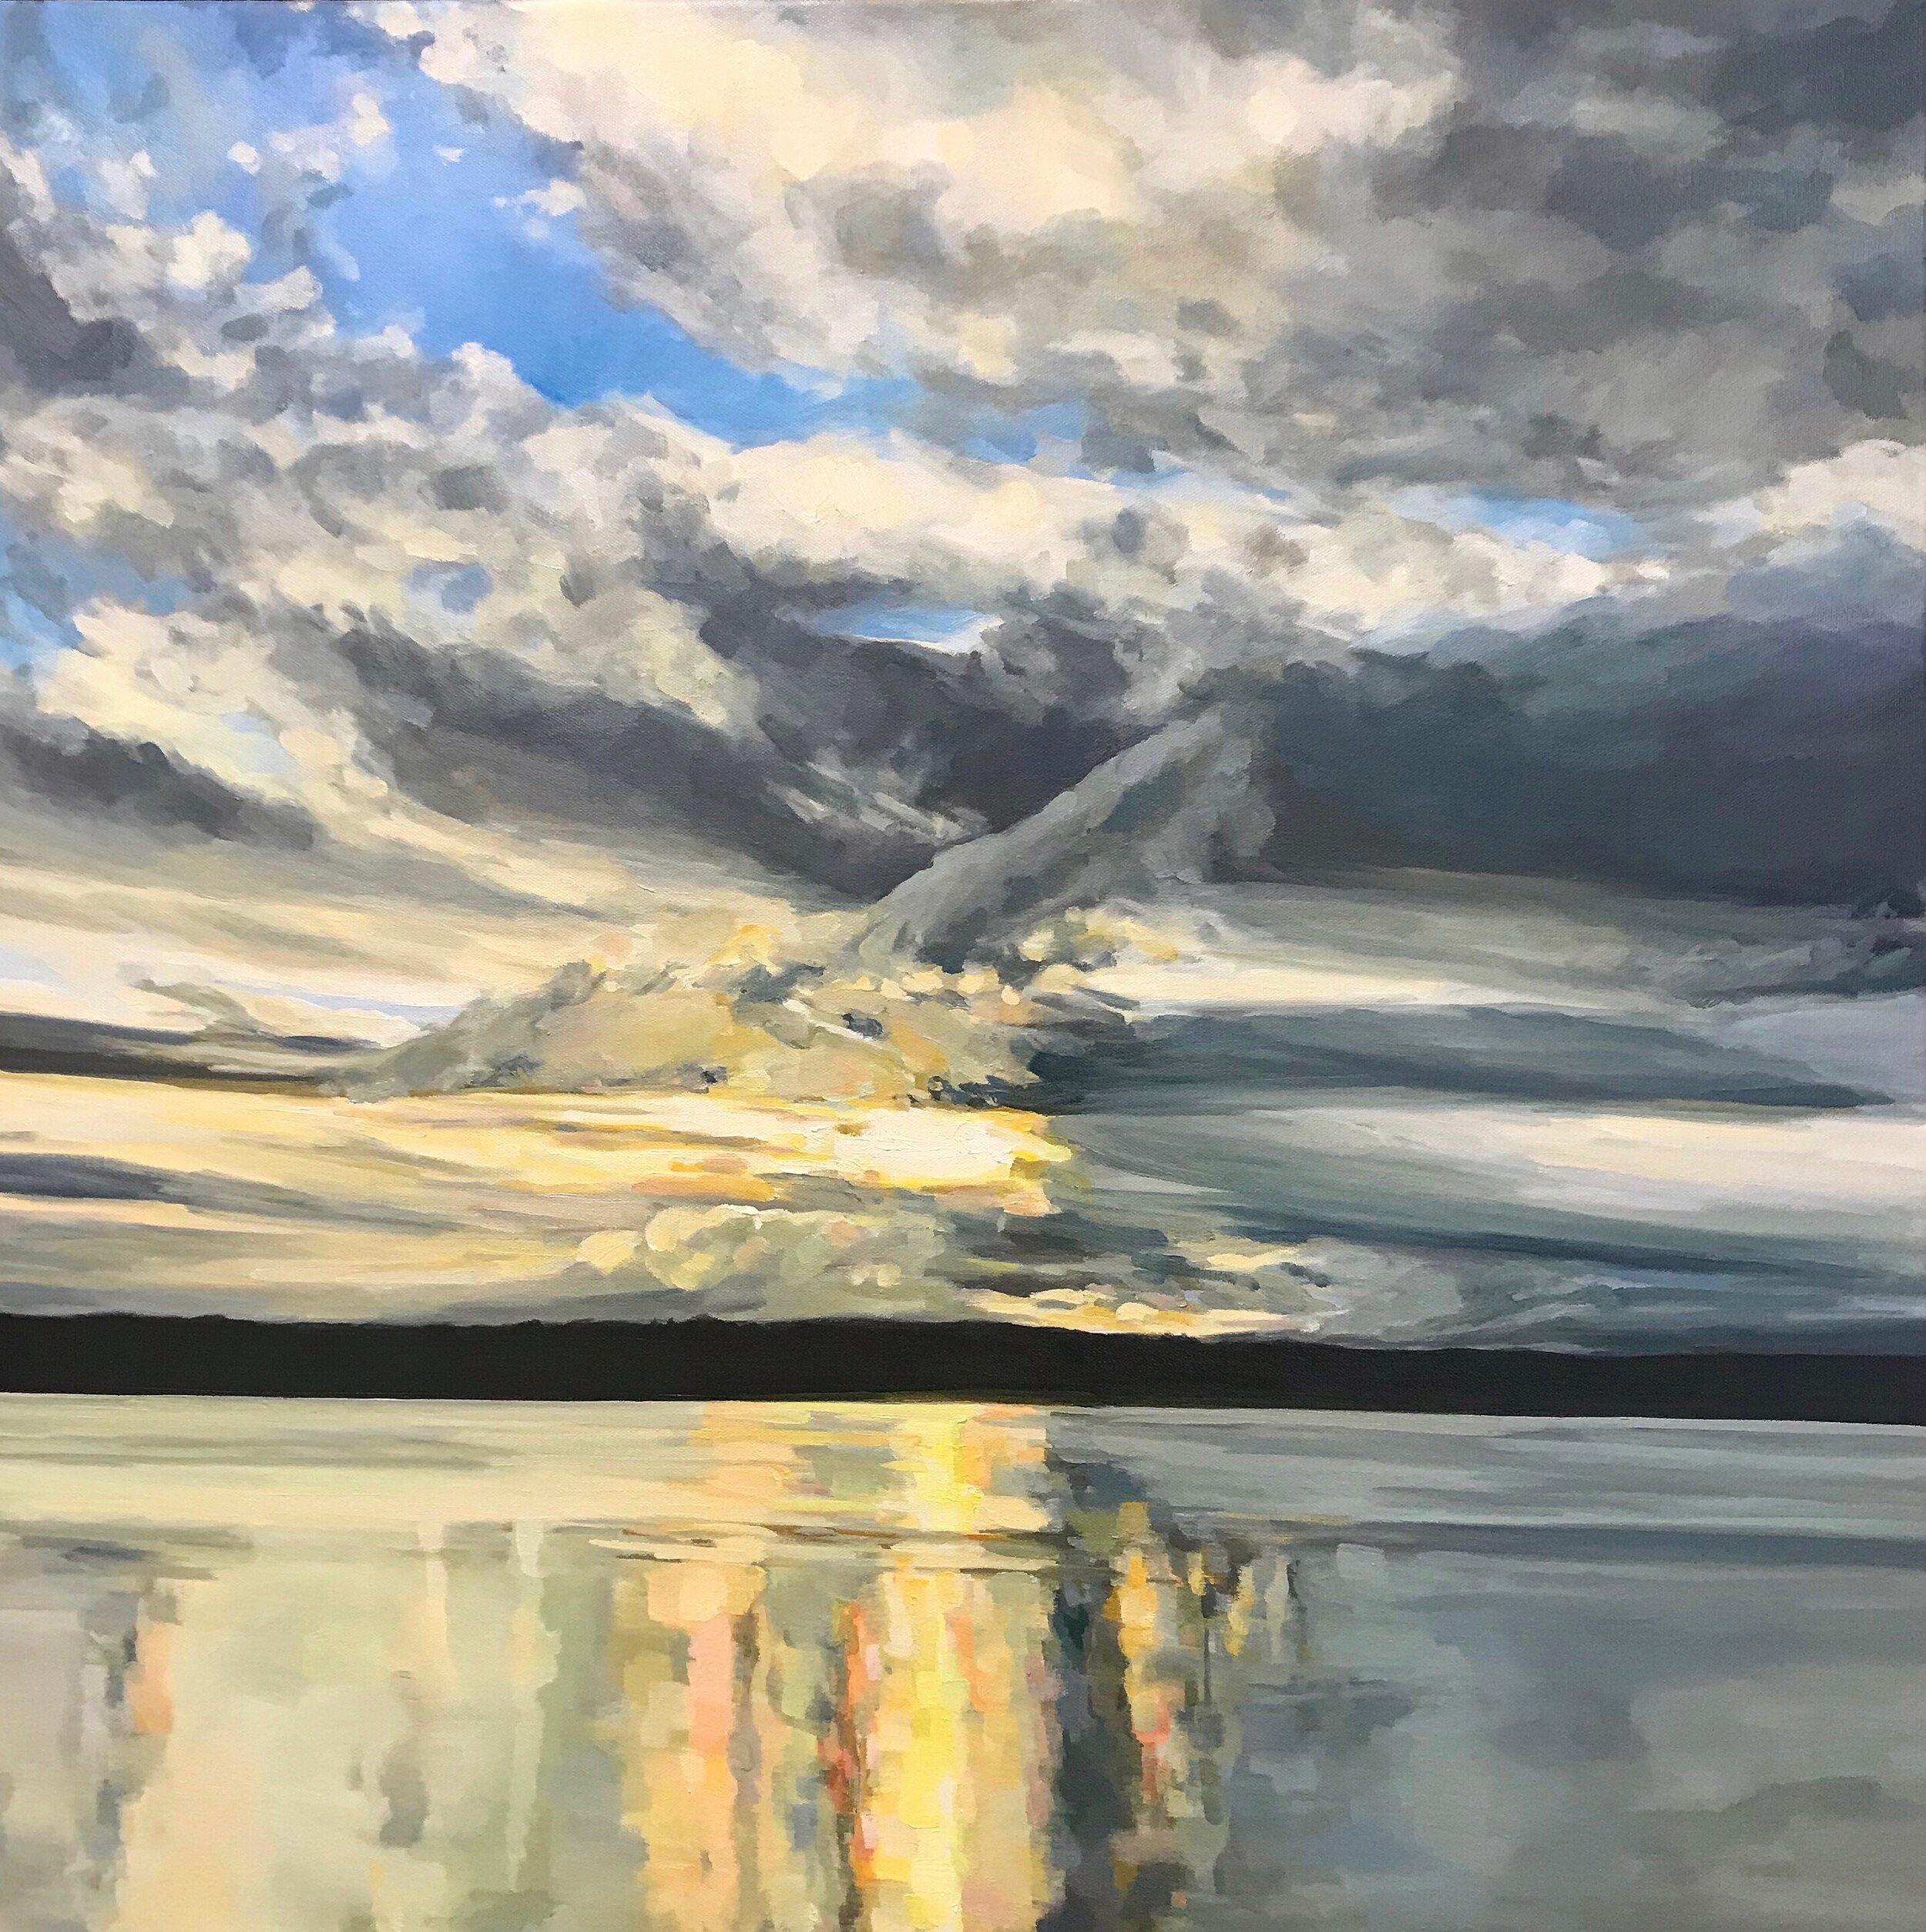 """'Winter Solstice'  2019  30"""" x 30""""  water soluble oil on canvas  sold"""